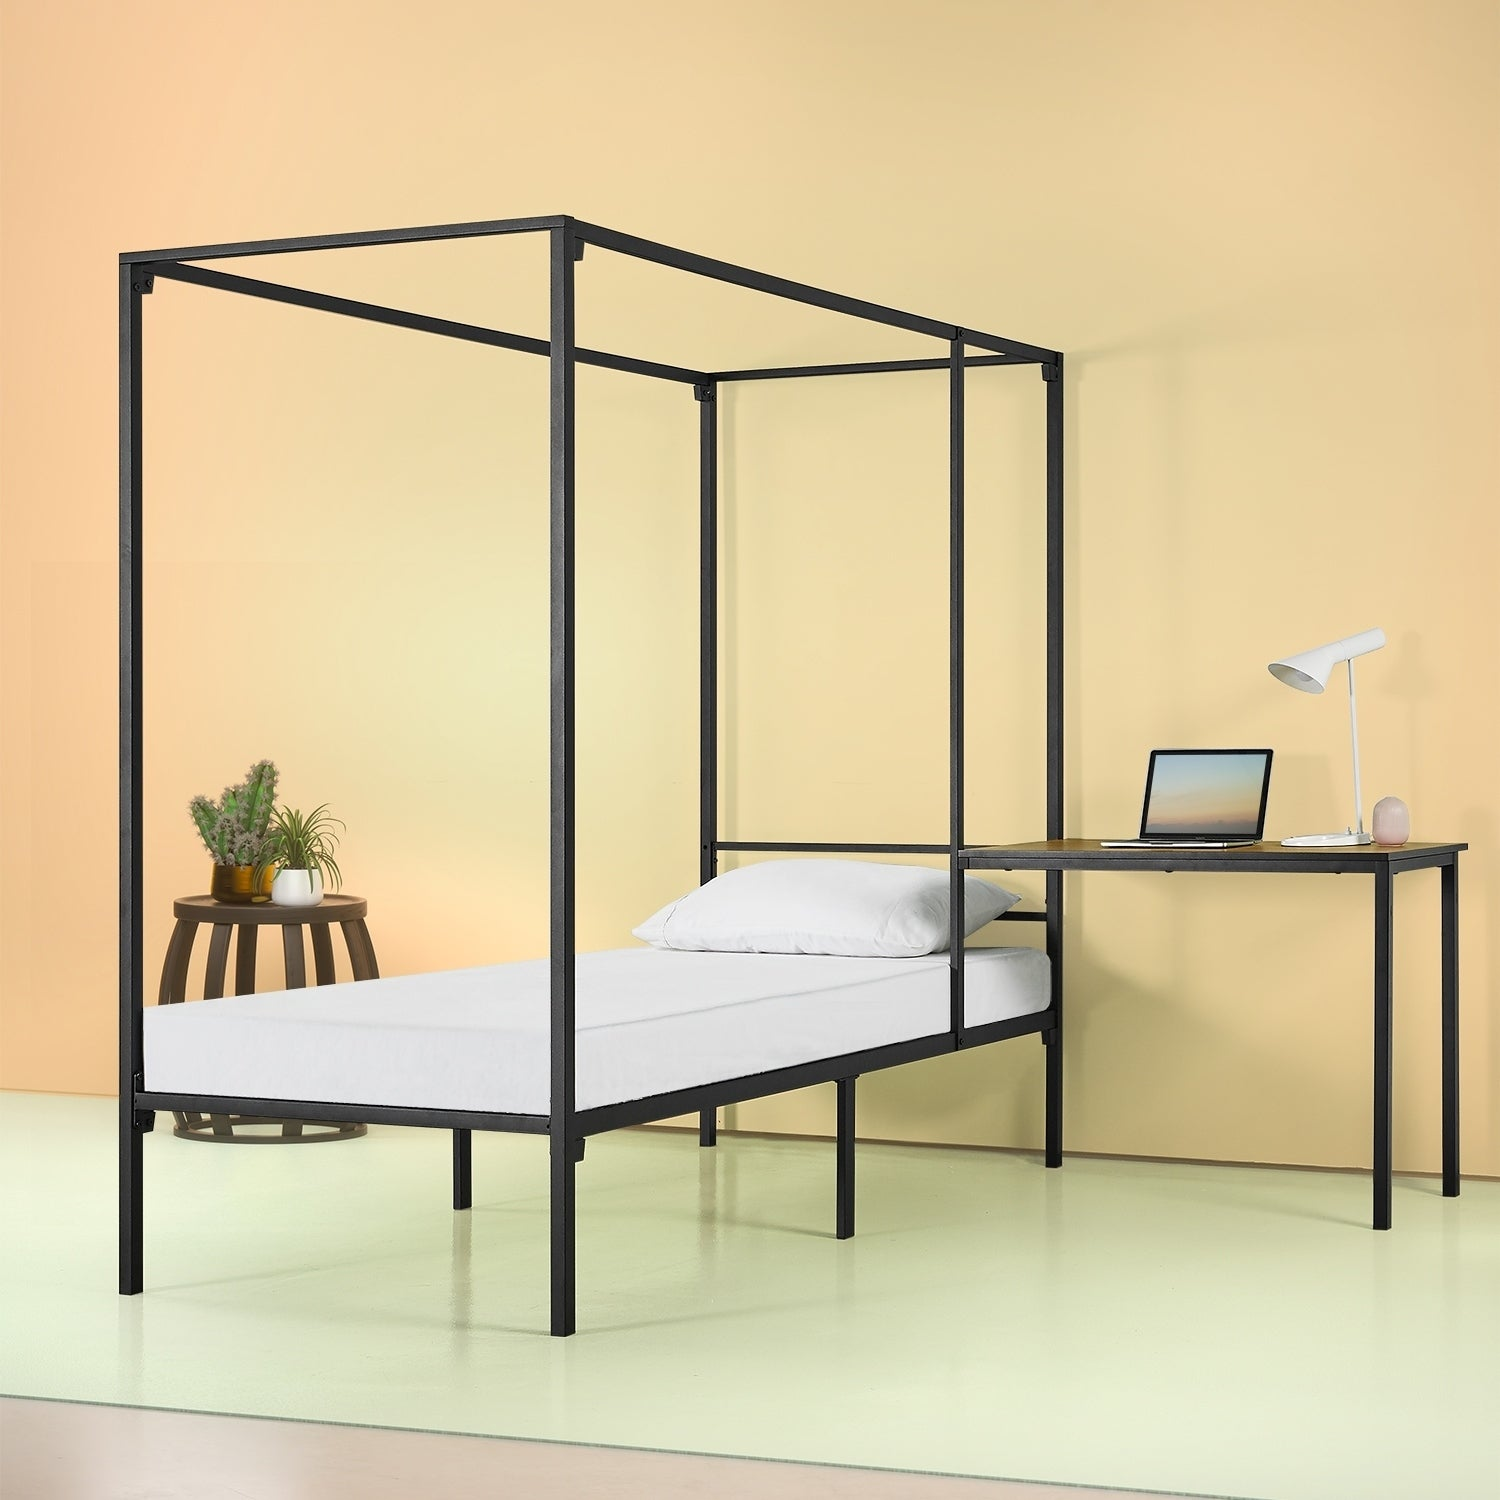 - Shop Priage By Zinus Canopy Bed Frame With Desk, Twin - Overstock